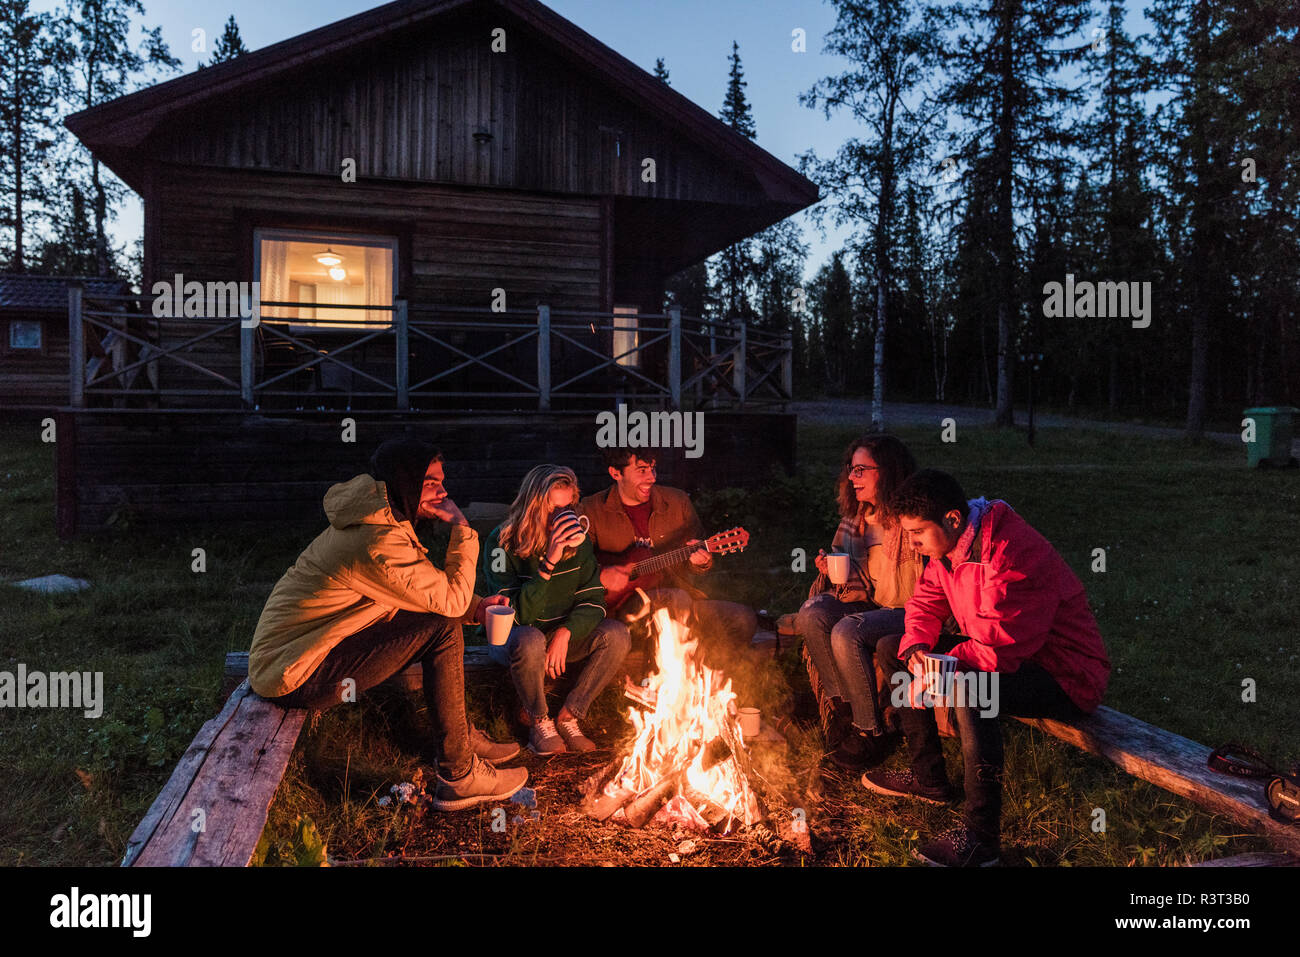 Group of friends sitting at a campfire, talking and playing guitar - Stock Image